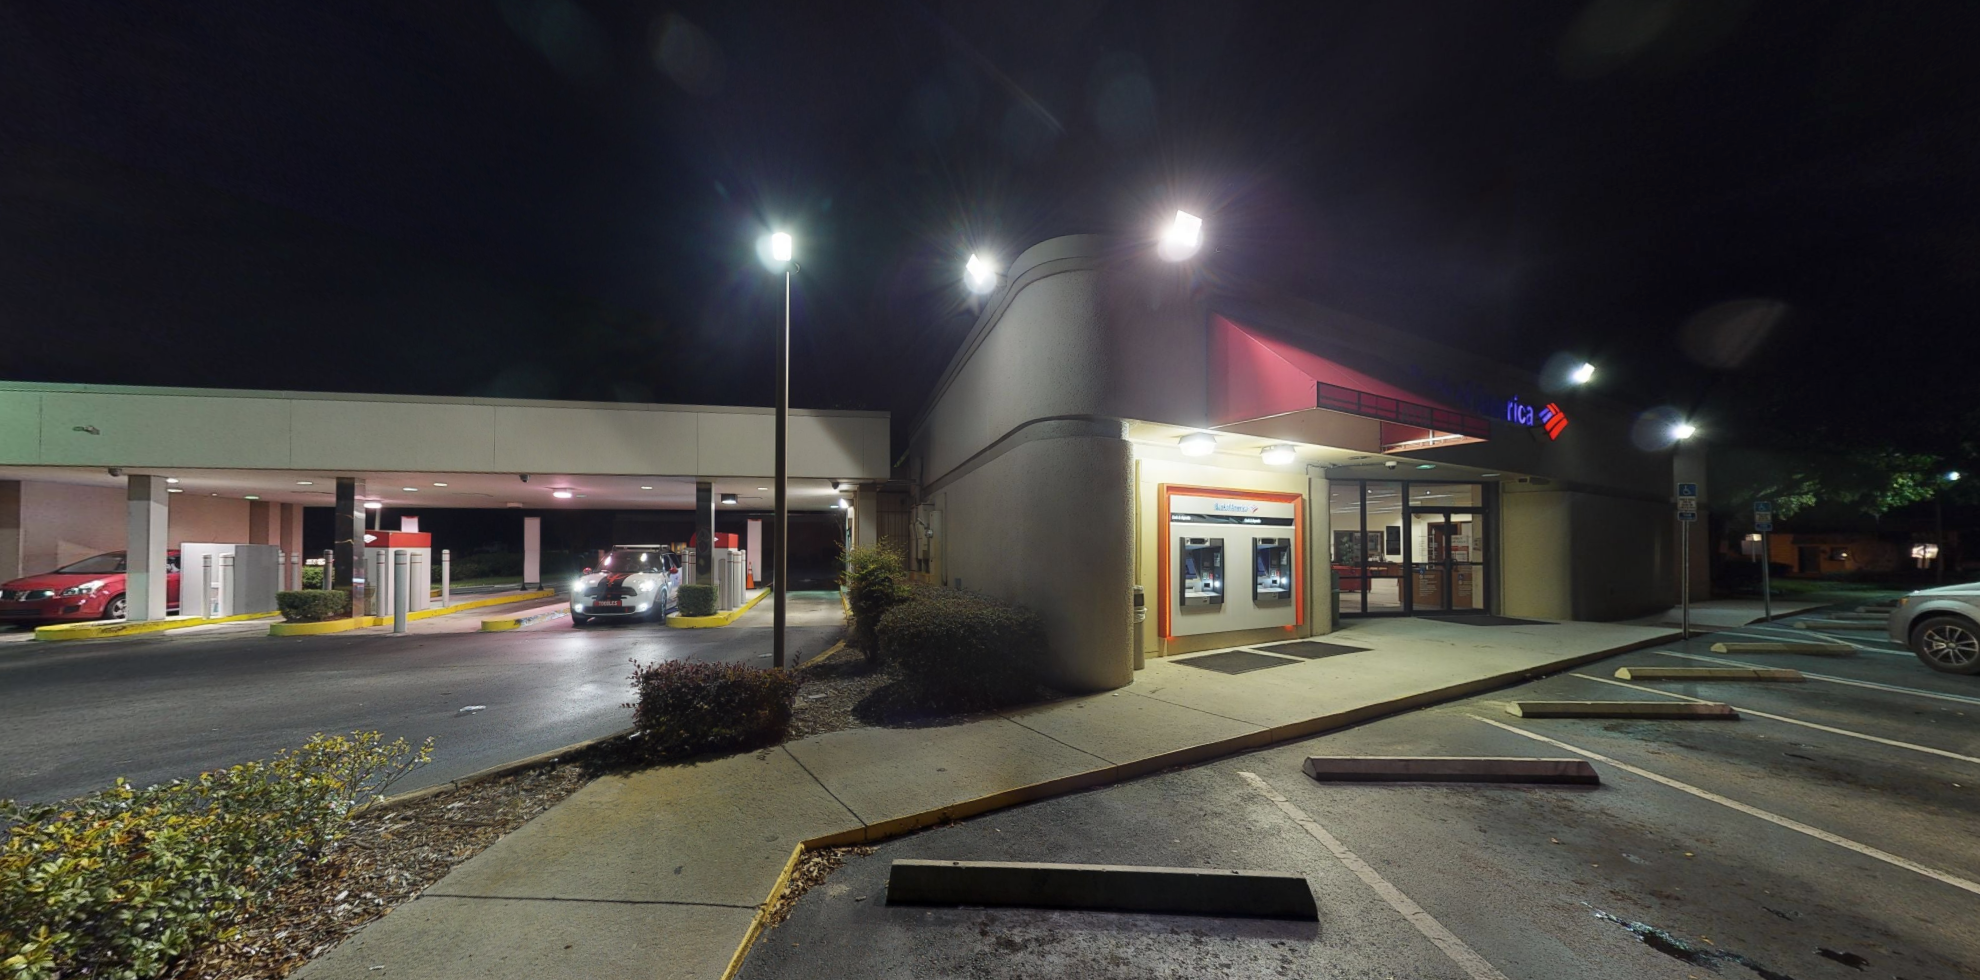 Bank of America financial center with drive-thru ATM | 7605 Aloma Ave, Winter Park, FL 32792